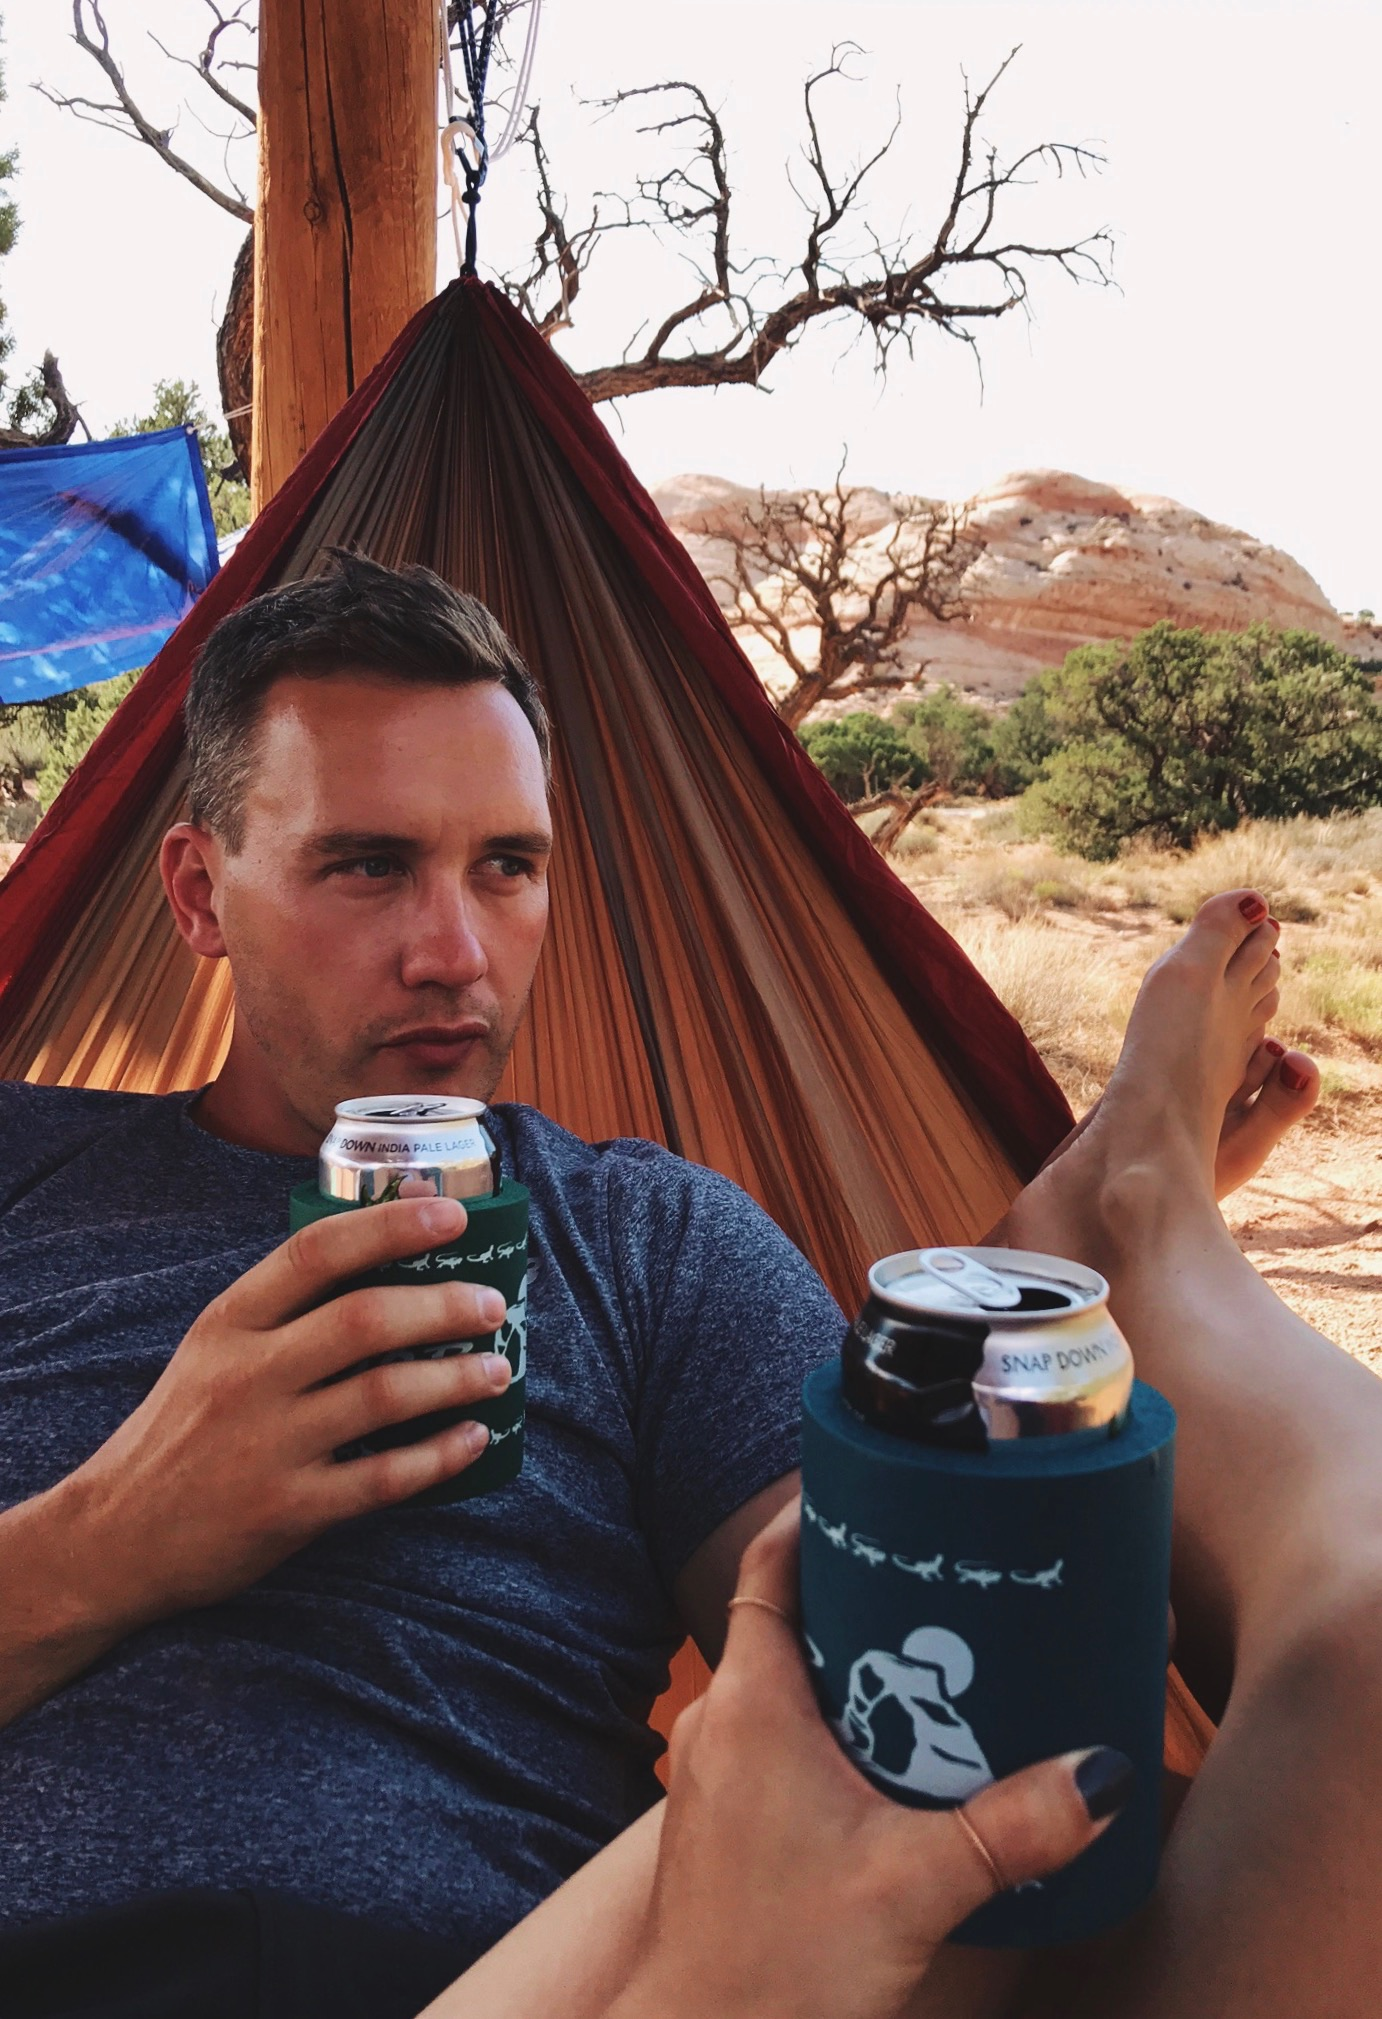 Doing our best to cool off (a la hammock and IPAs) in Canyonlands